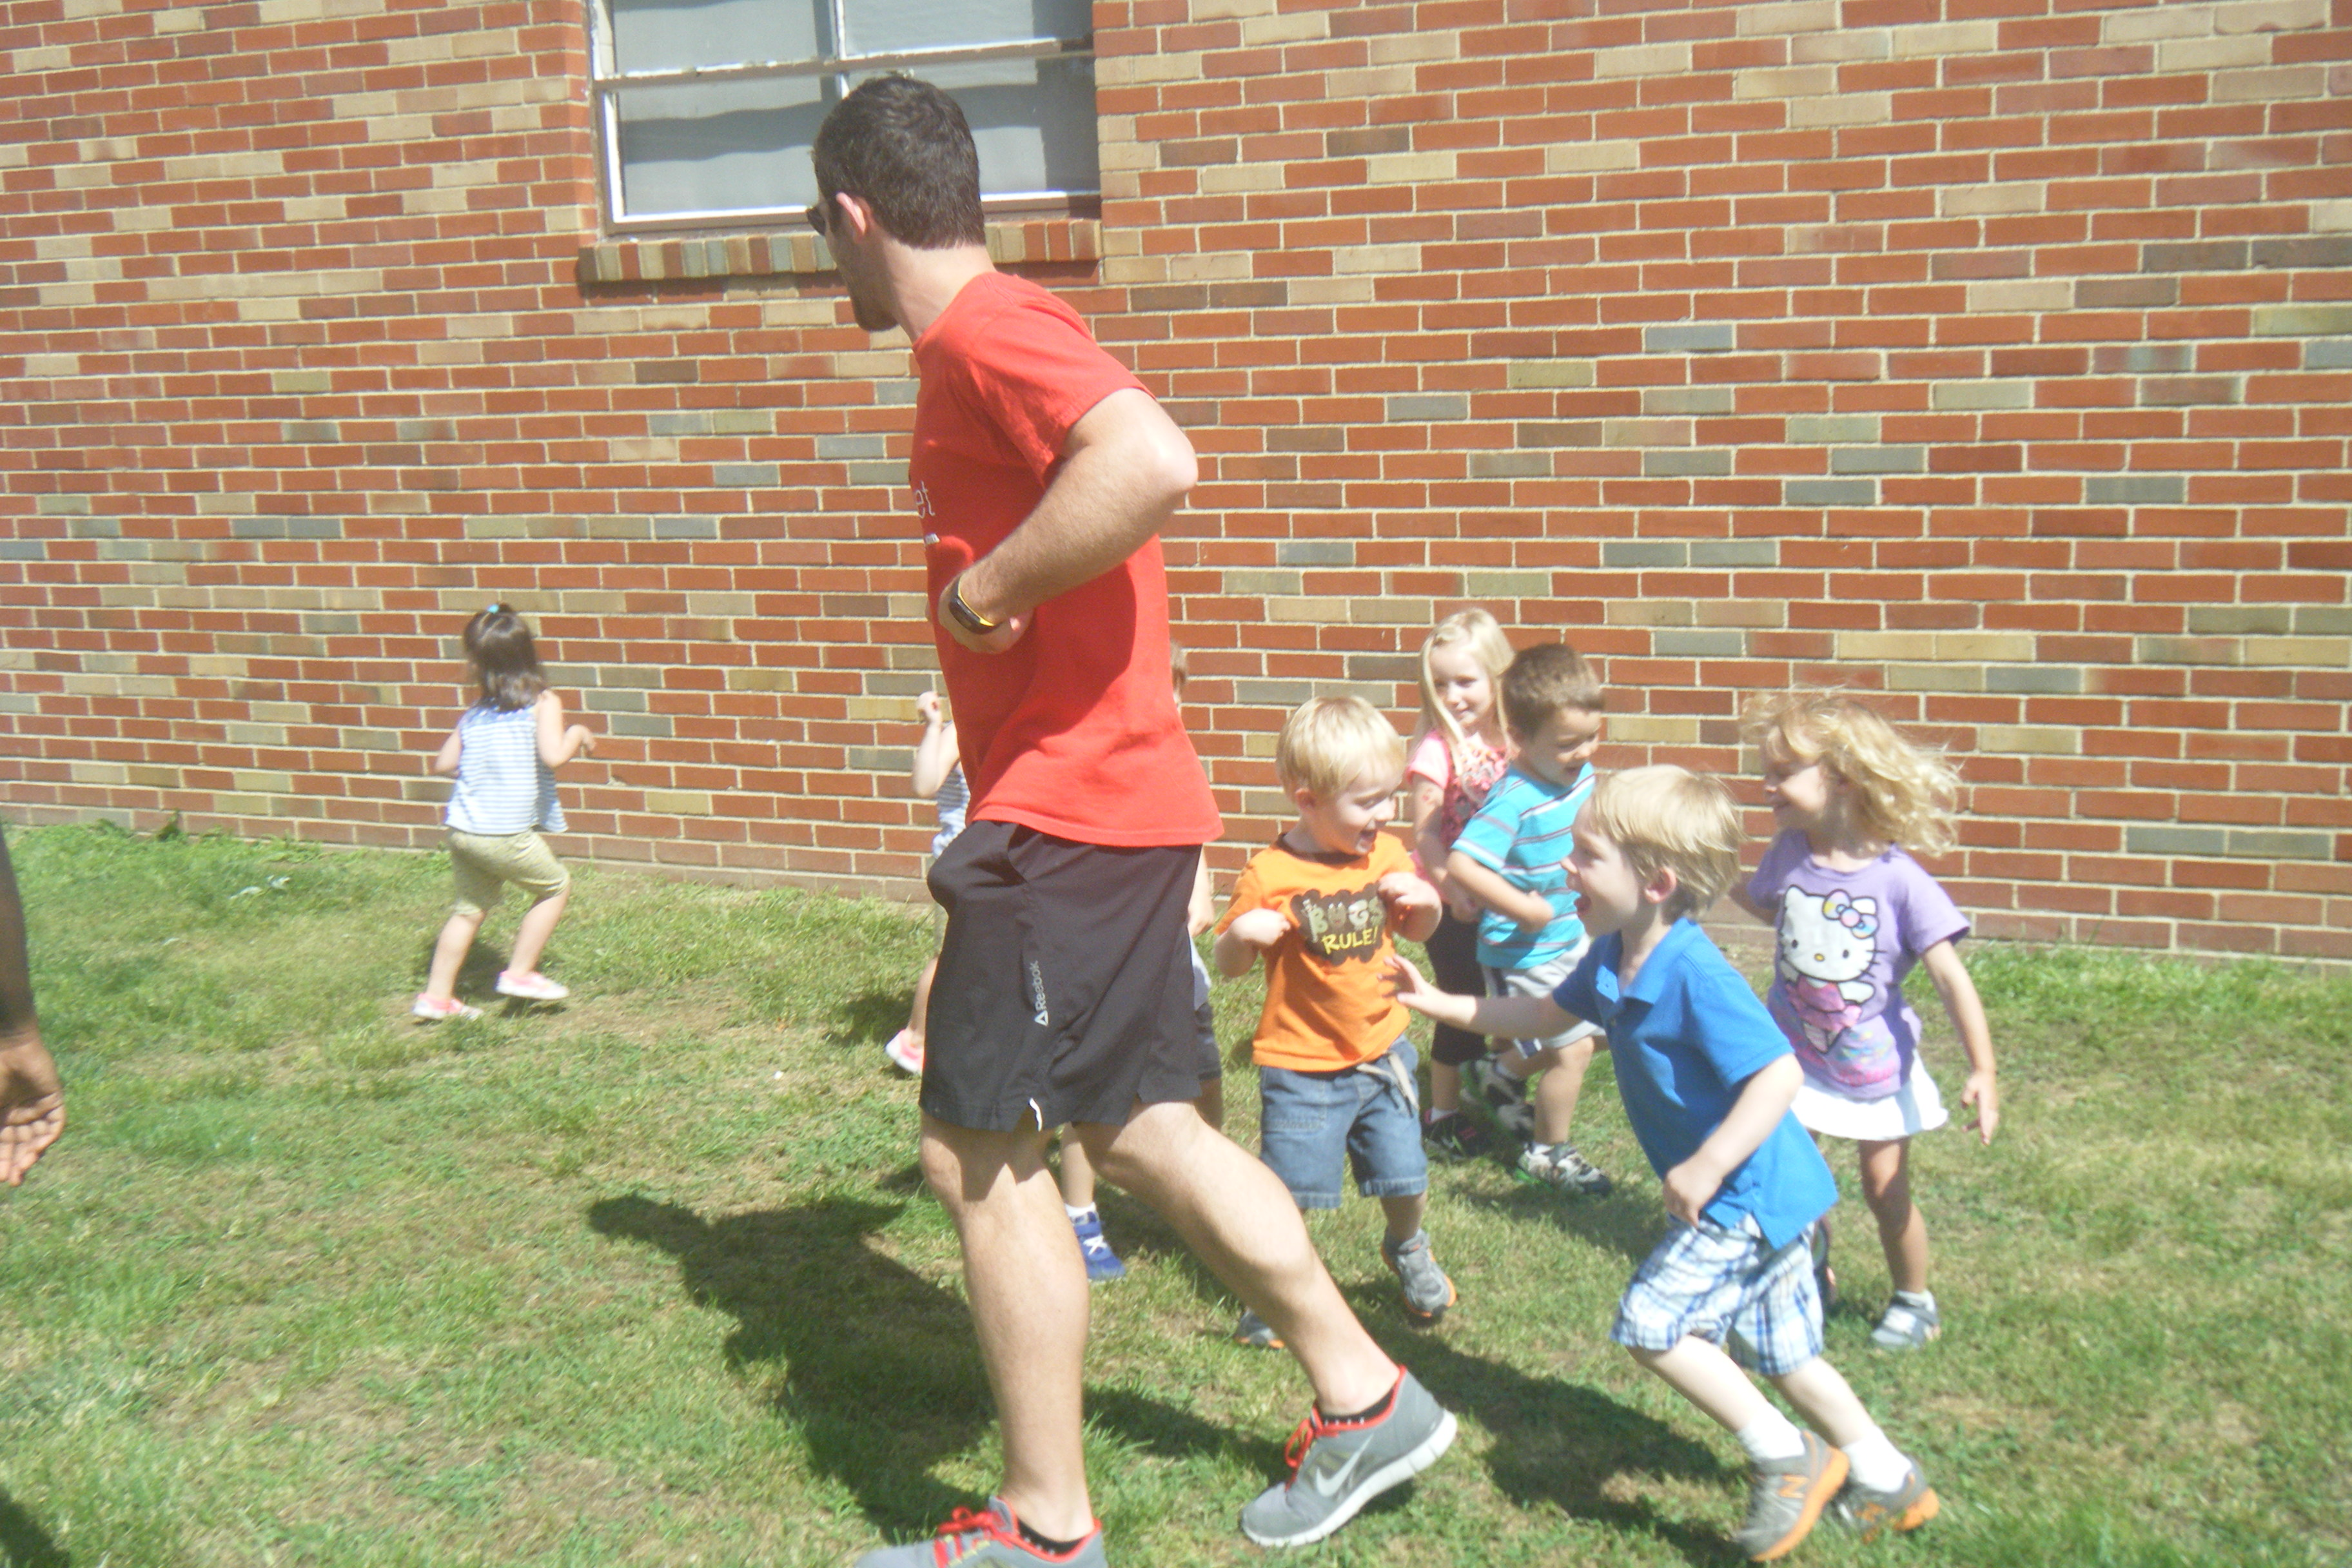 Preschoolers enjoying outdoor activites on the playground.